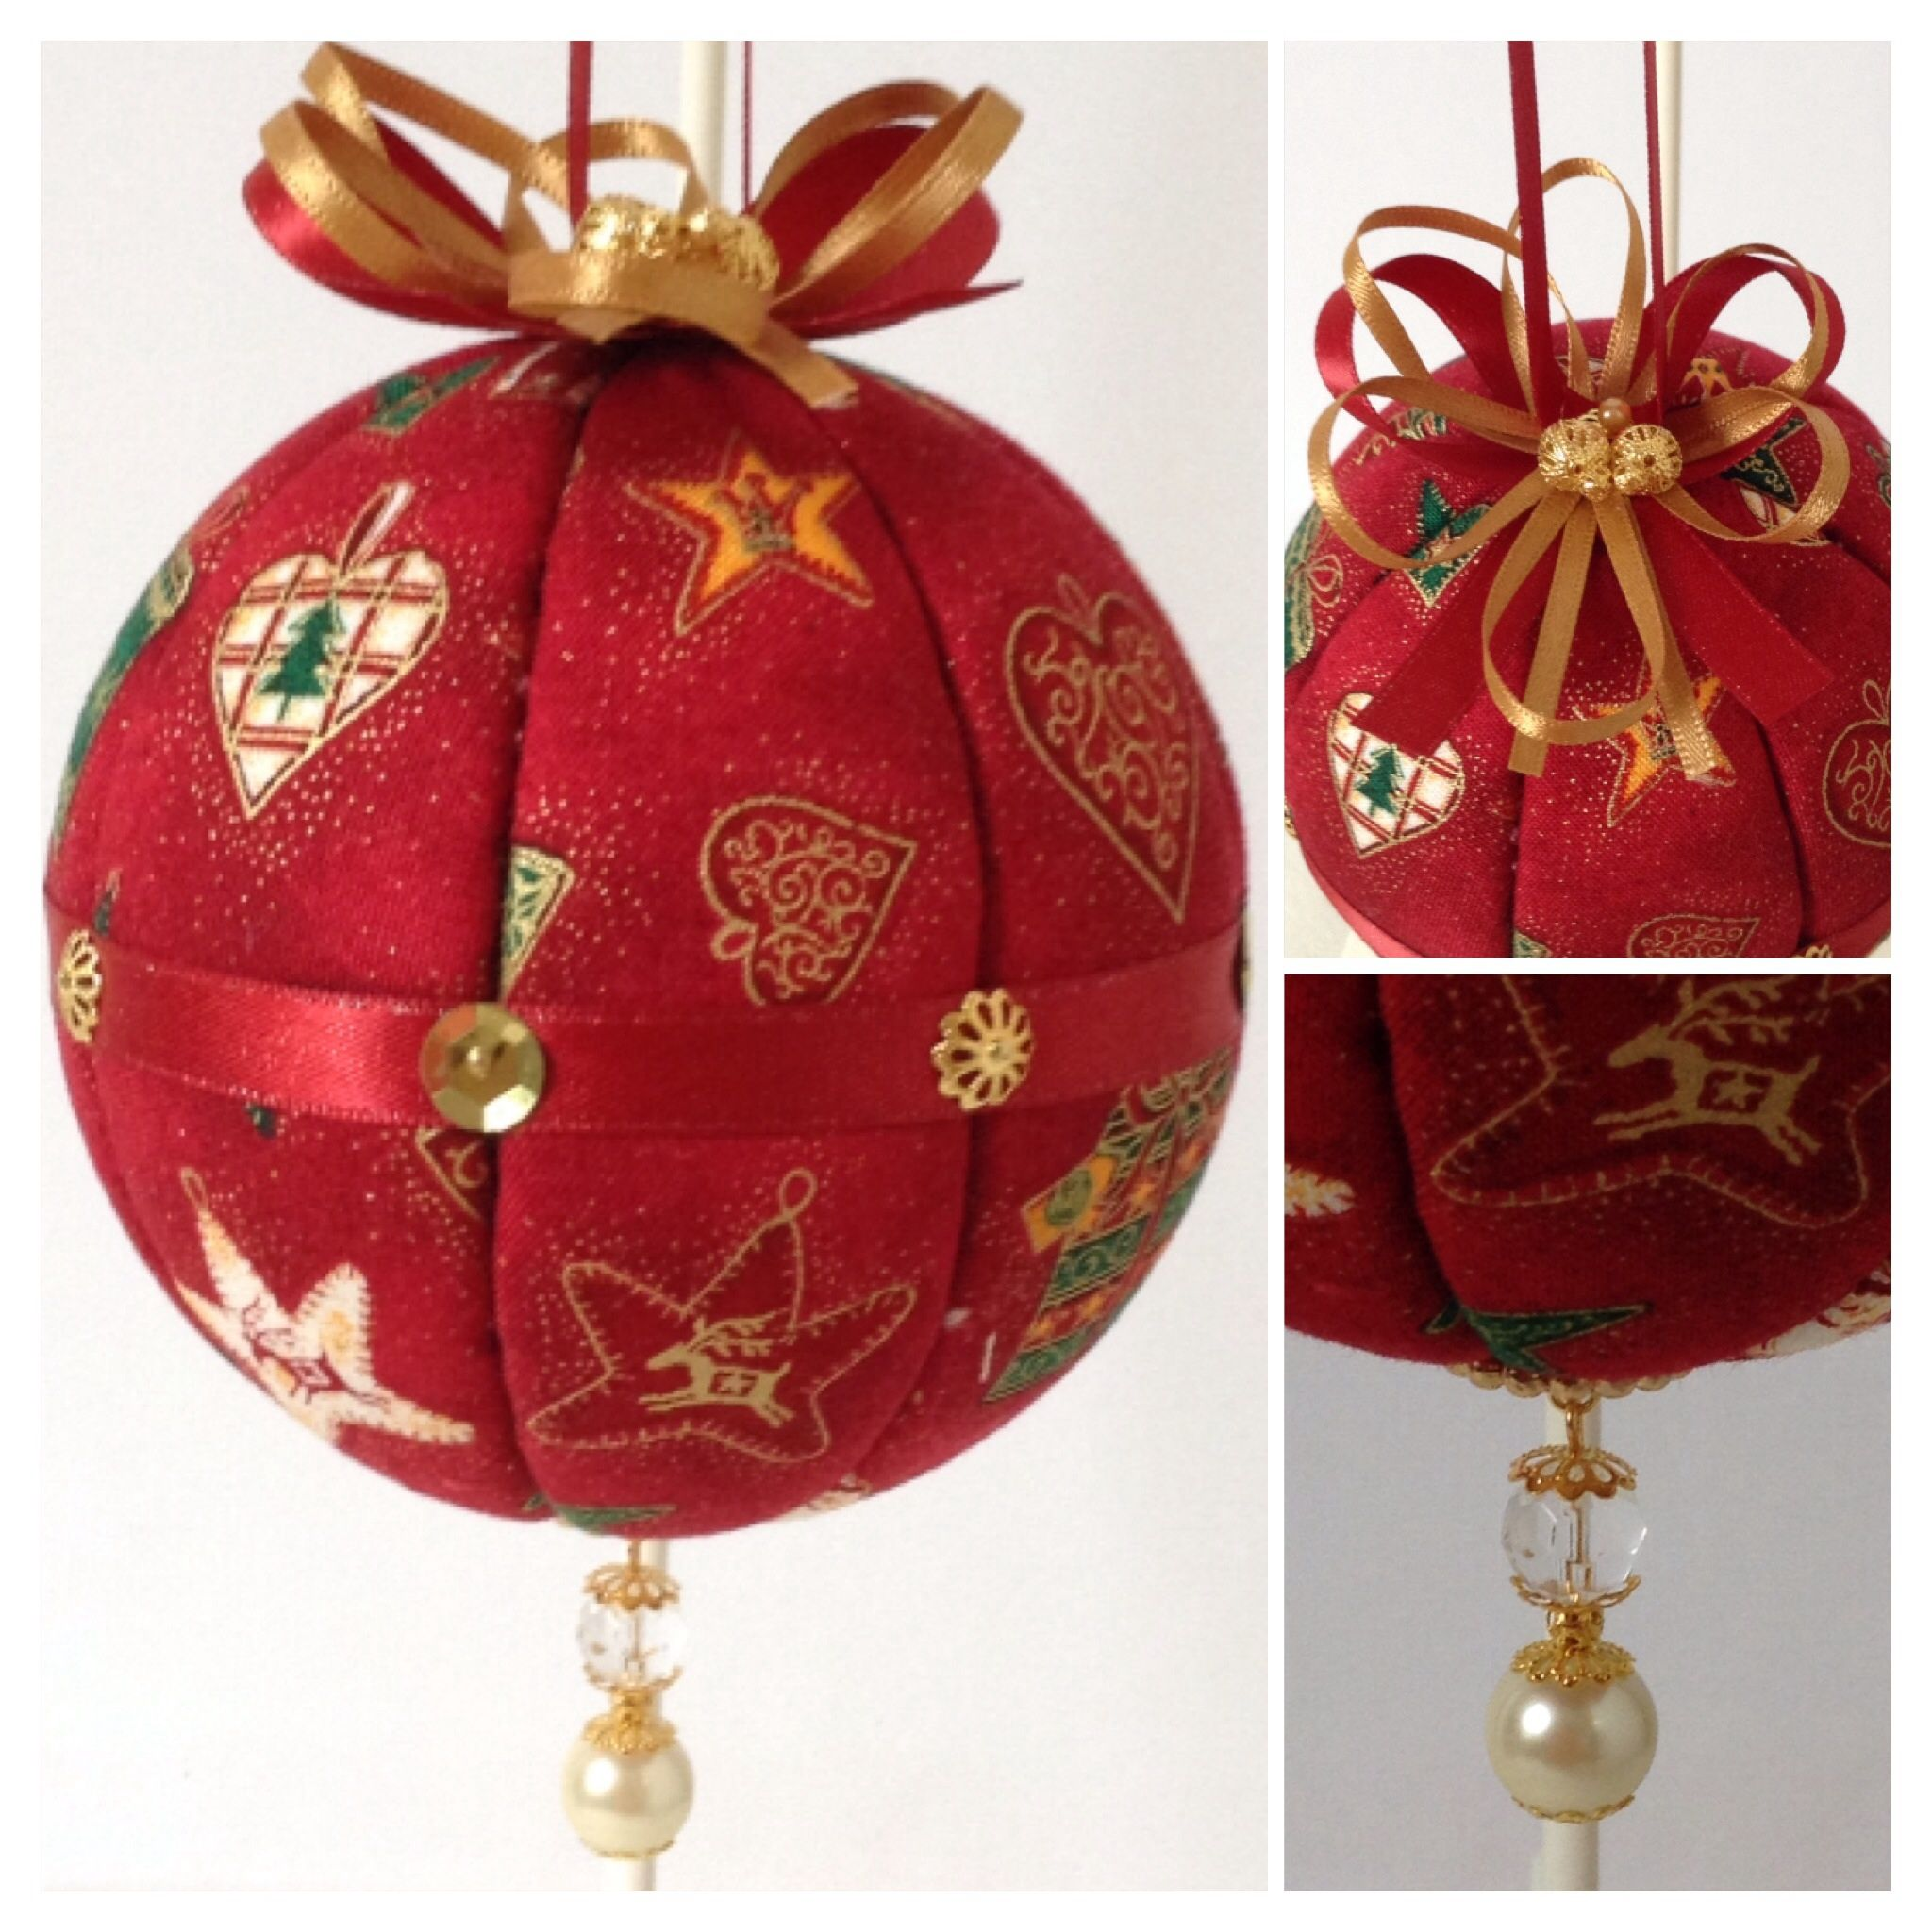 Fabric Covered Polystyrene Bauble